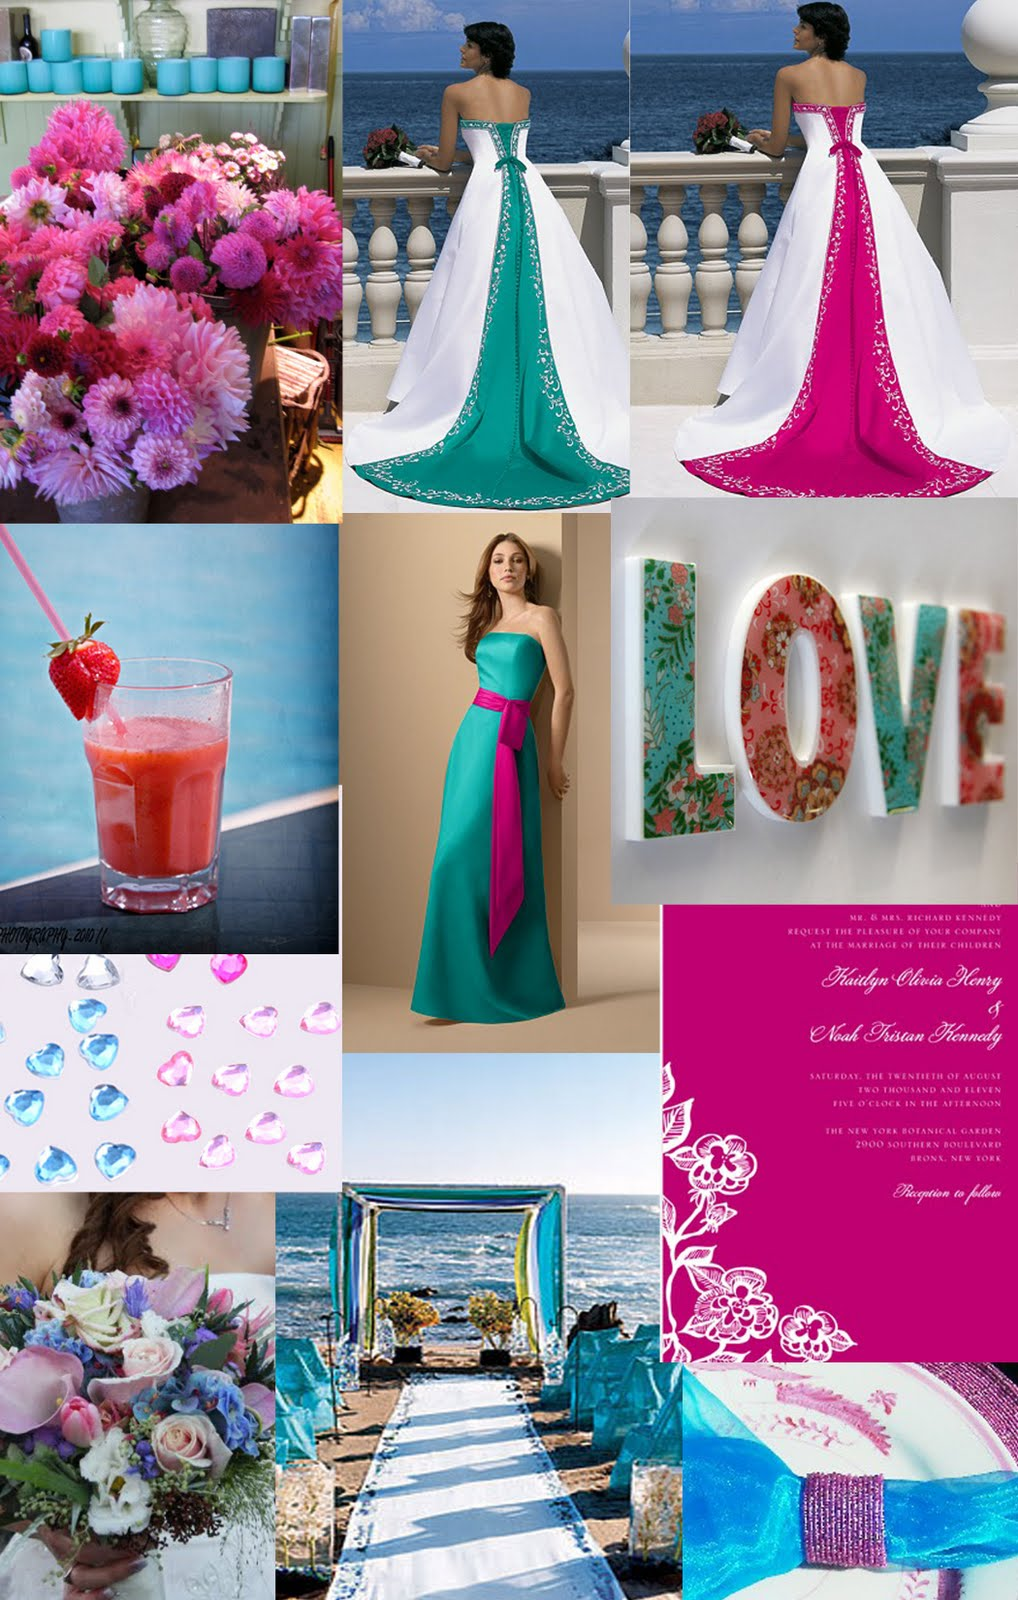 Turquoise Accenting With Pink Or Hot Kicks Your Wedding Up A Notch Adding Gives The Caribbean Feel Making It Perfect